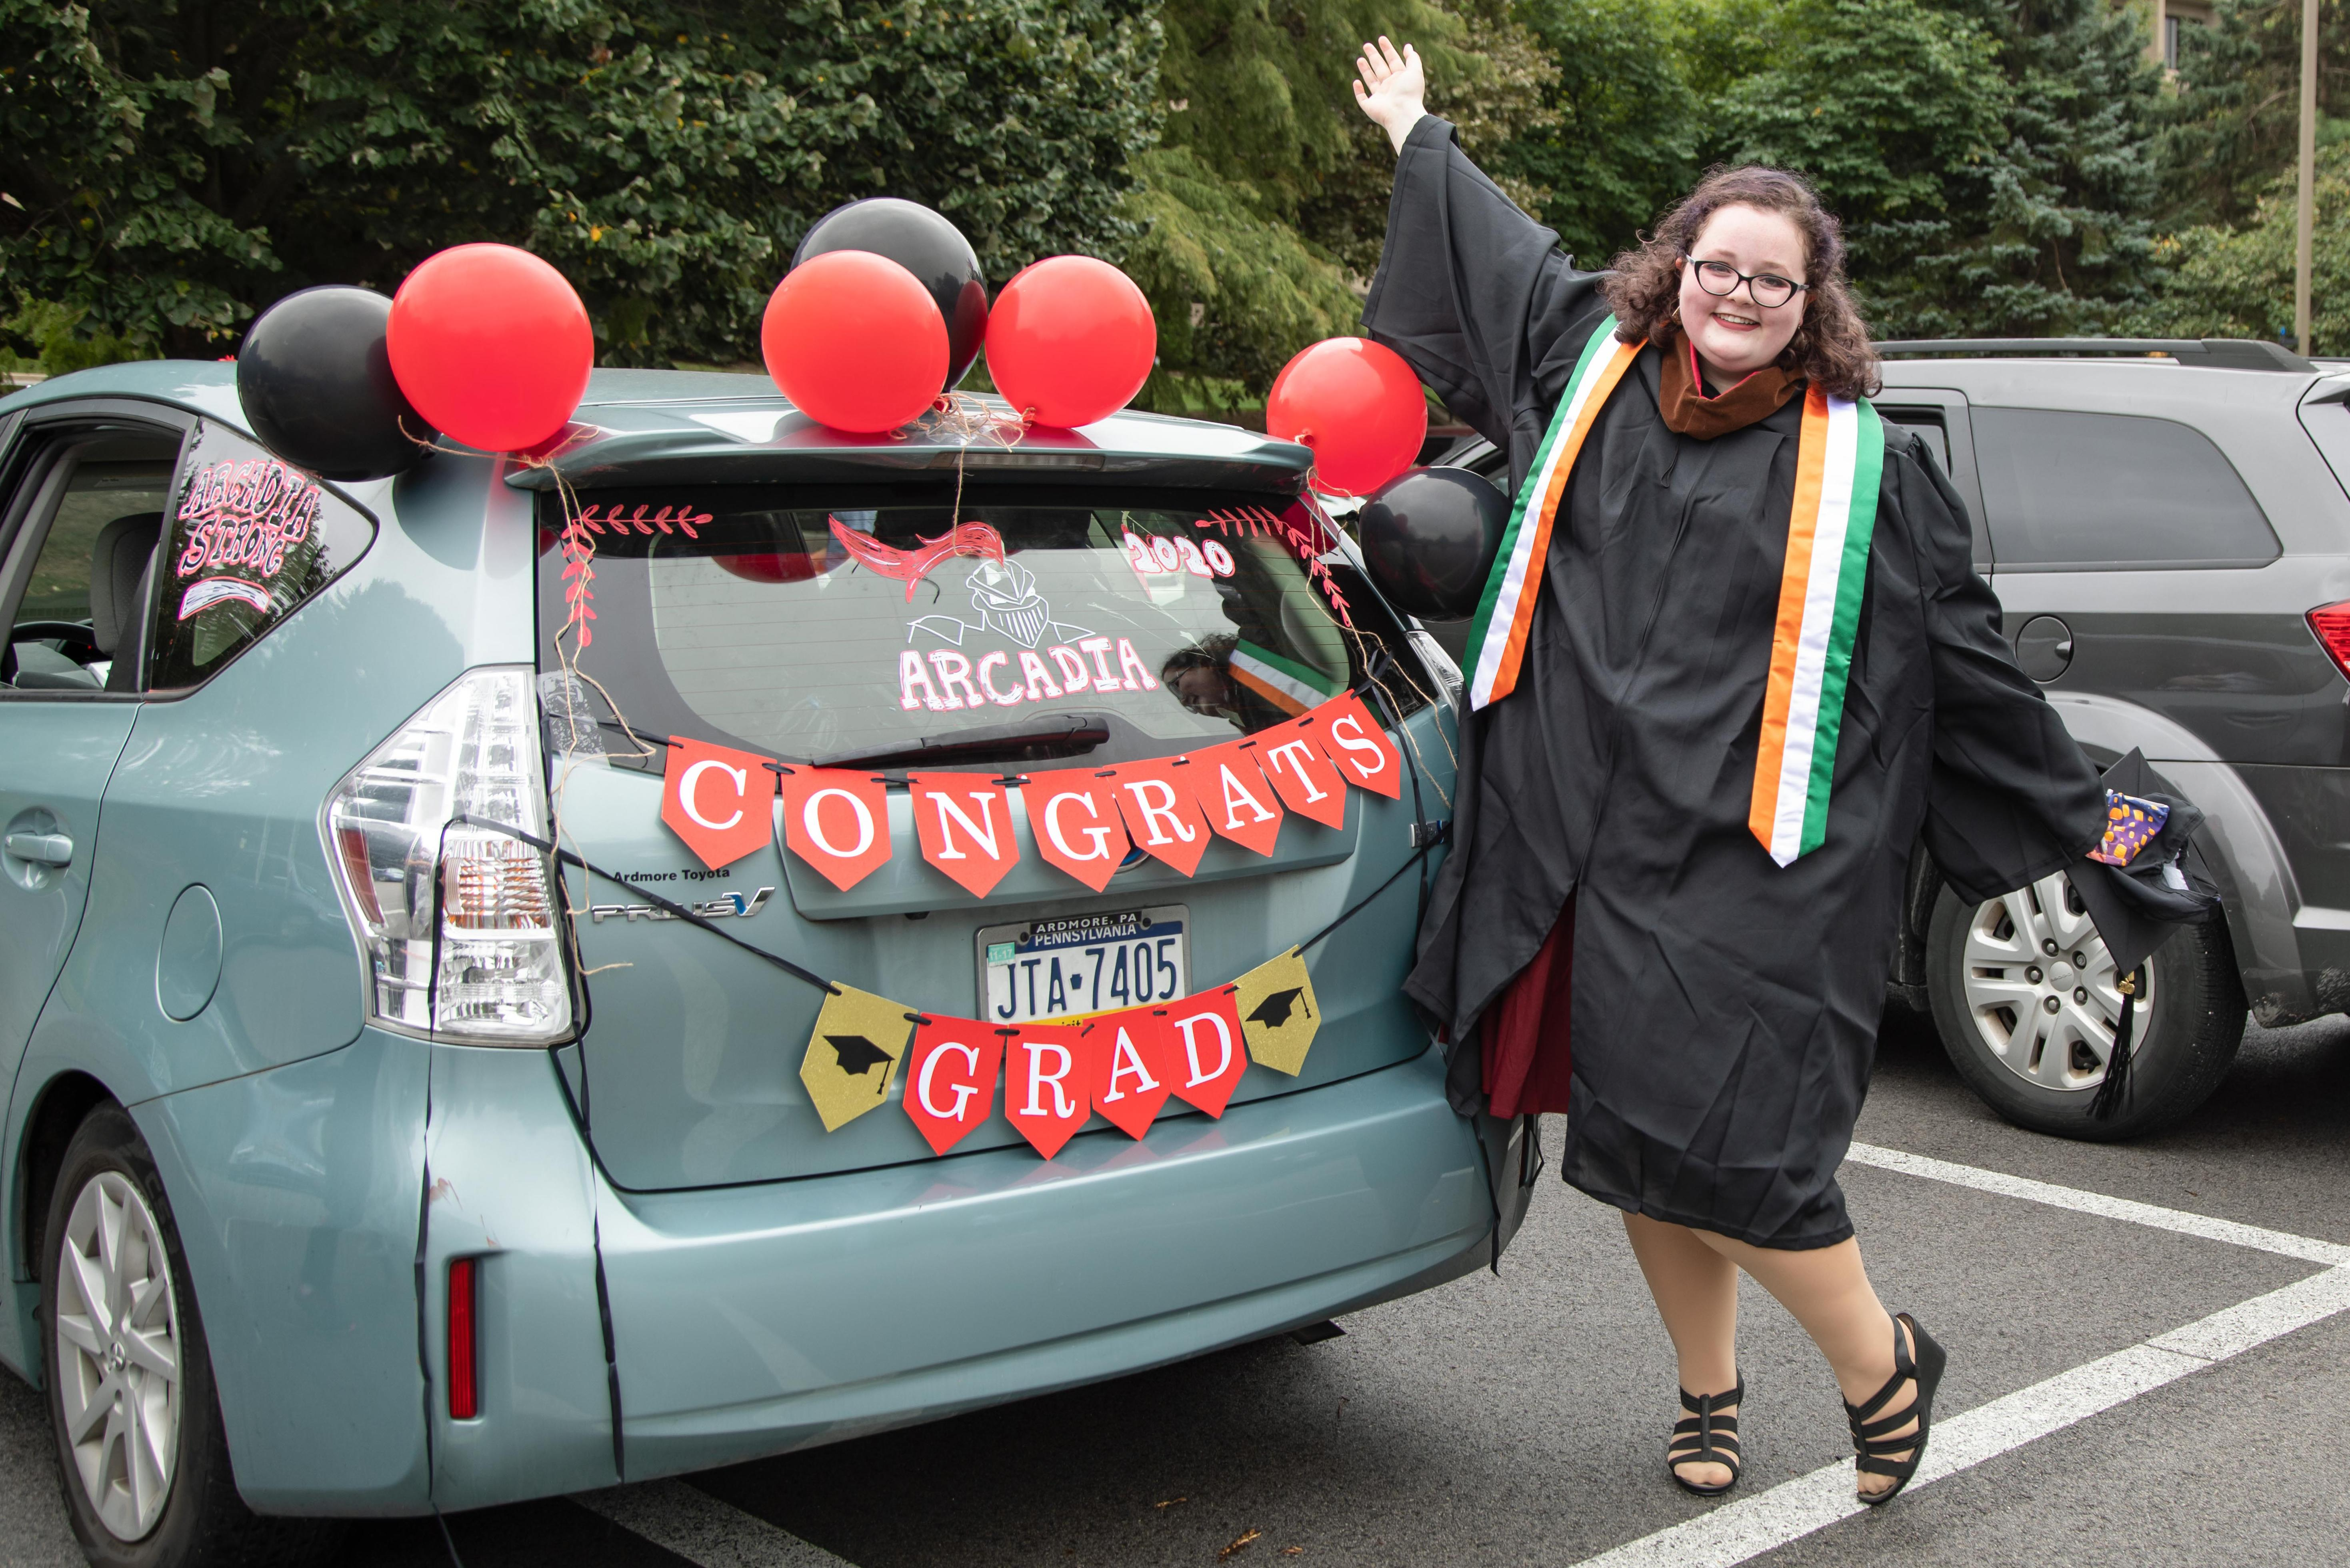 Arcadia University grad in front of decorated hatchback for celebration event